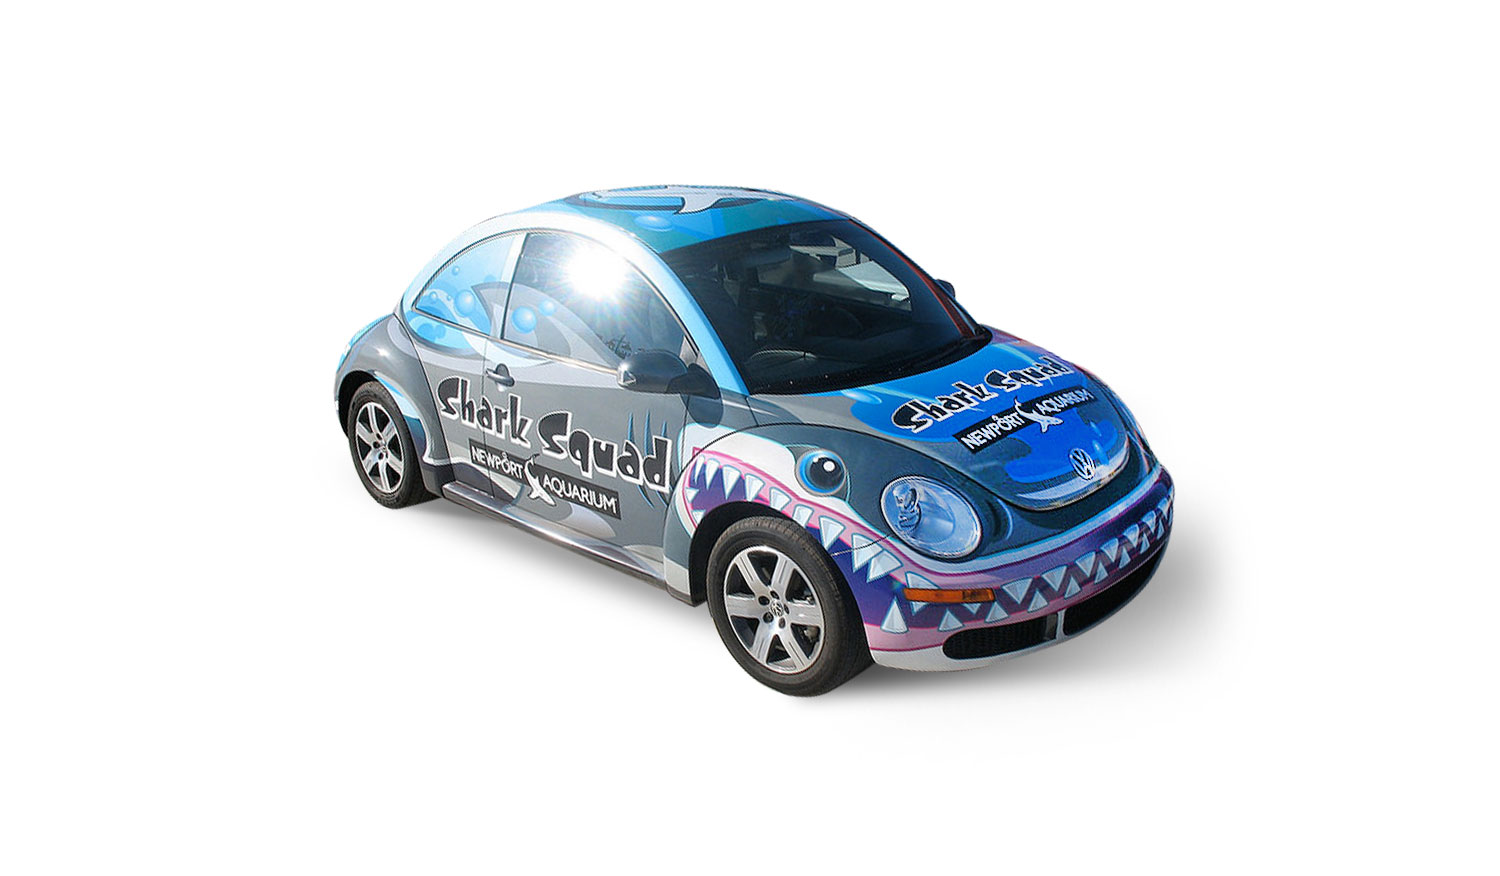 Newport Aquarium Shark Squad car